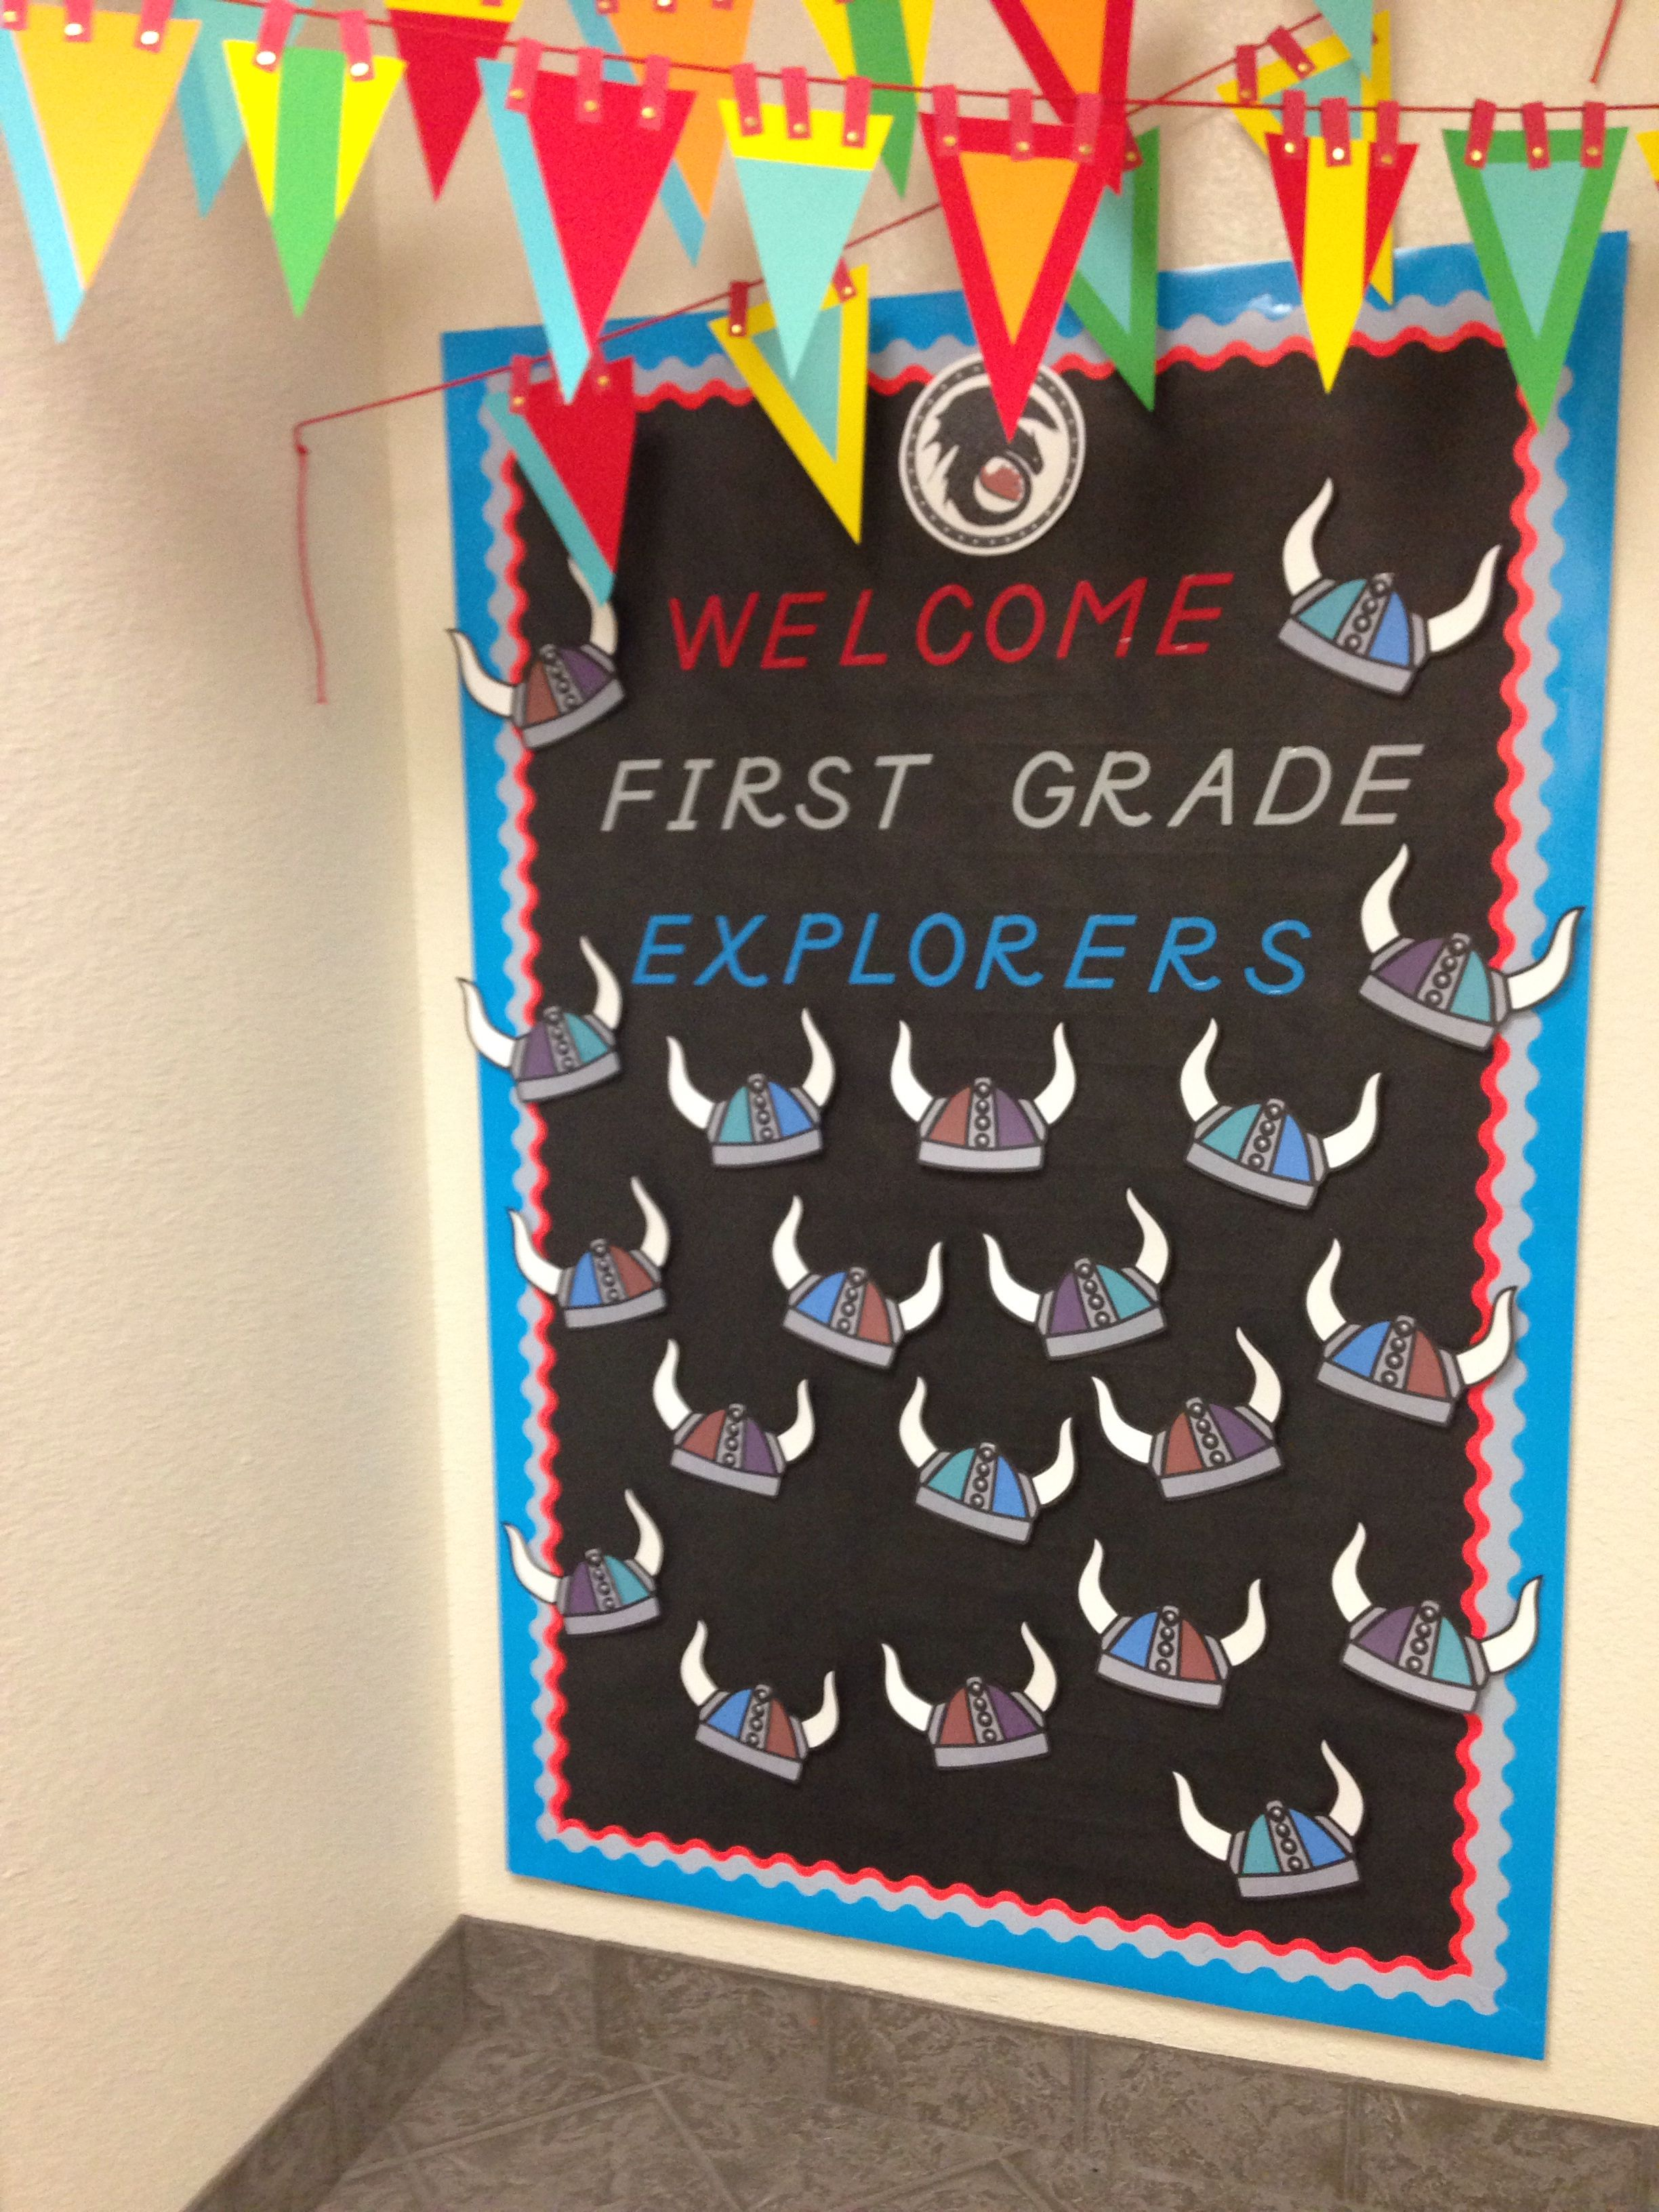 How to train your dragon bulletin board completed bulletin boards how to train your dragon bulletin board ccuart Images